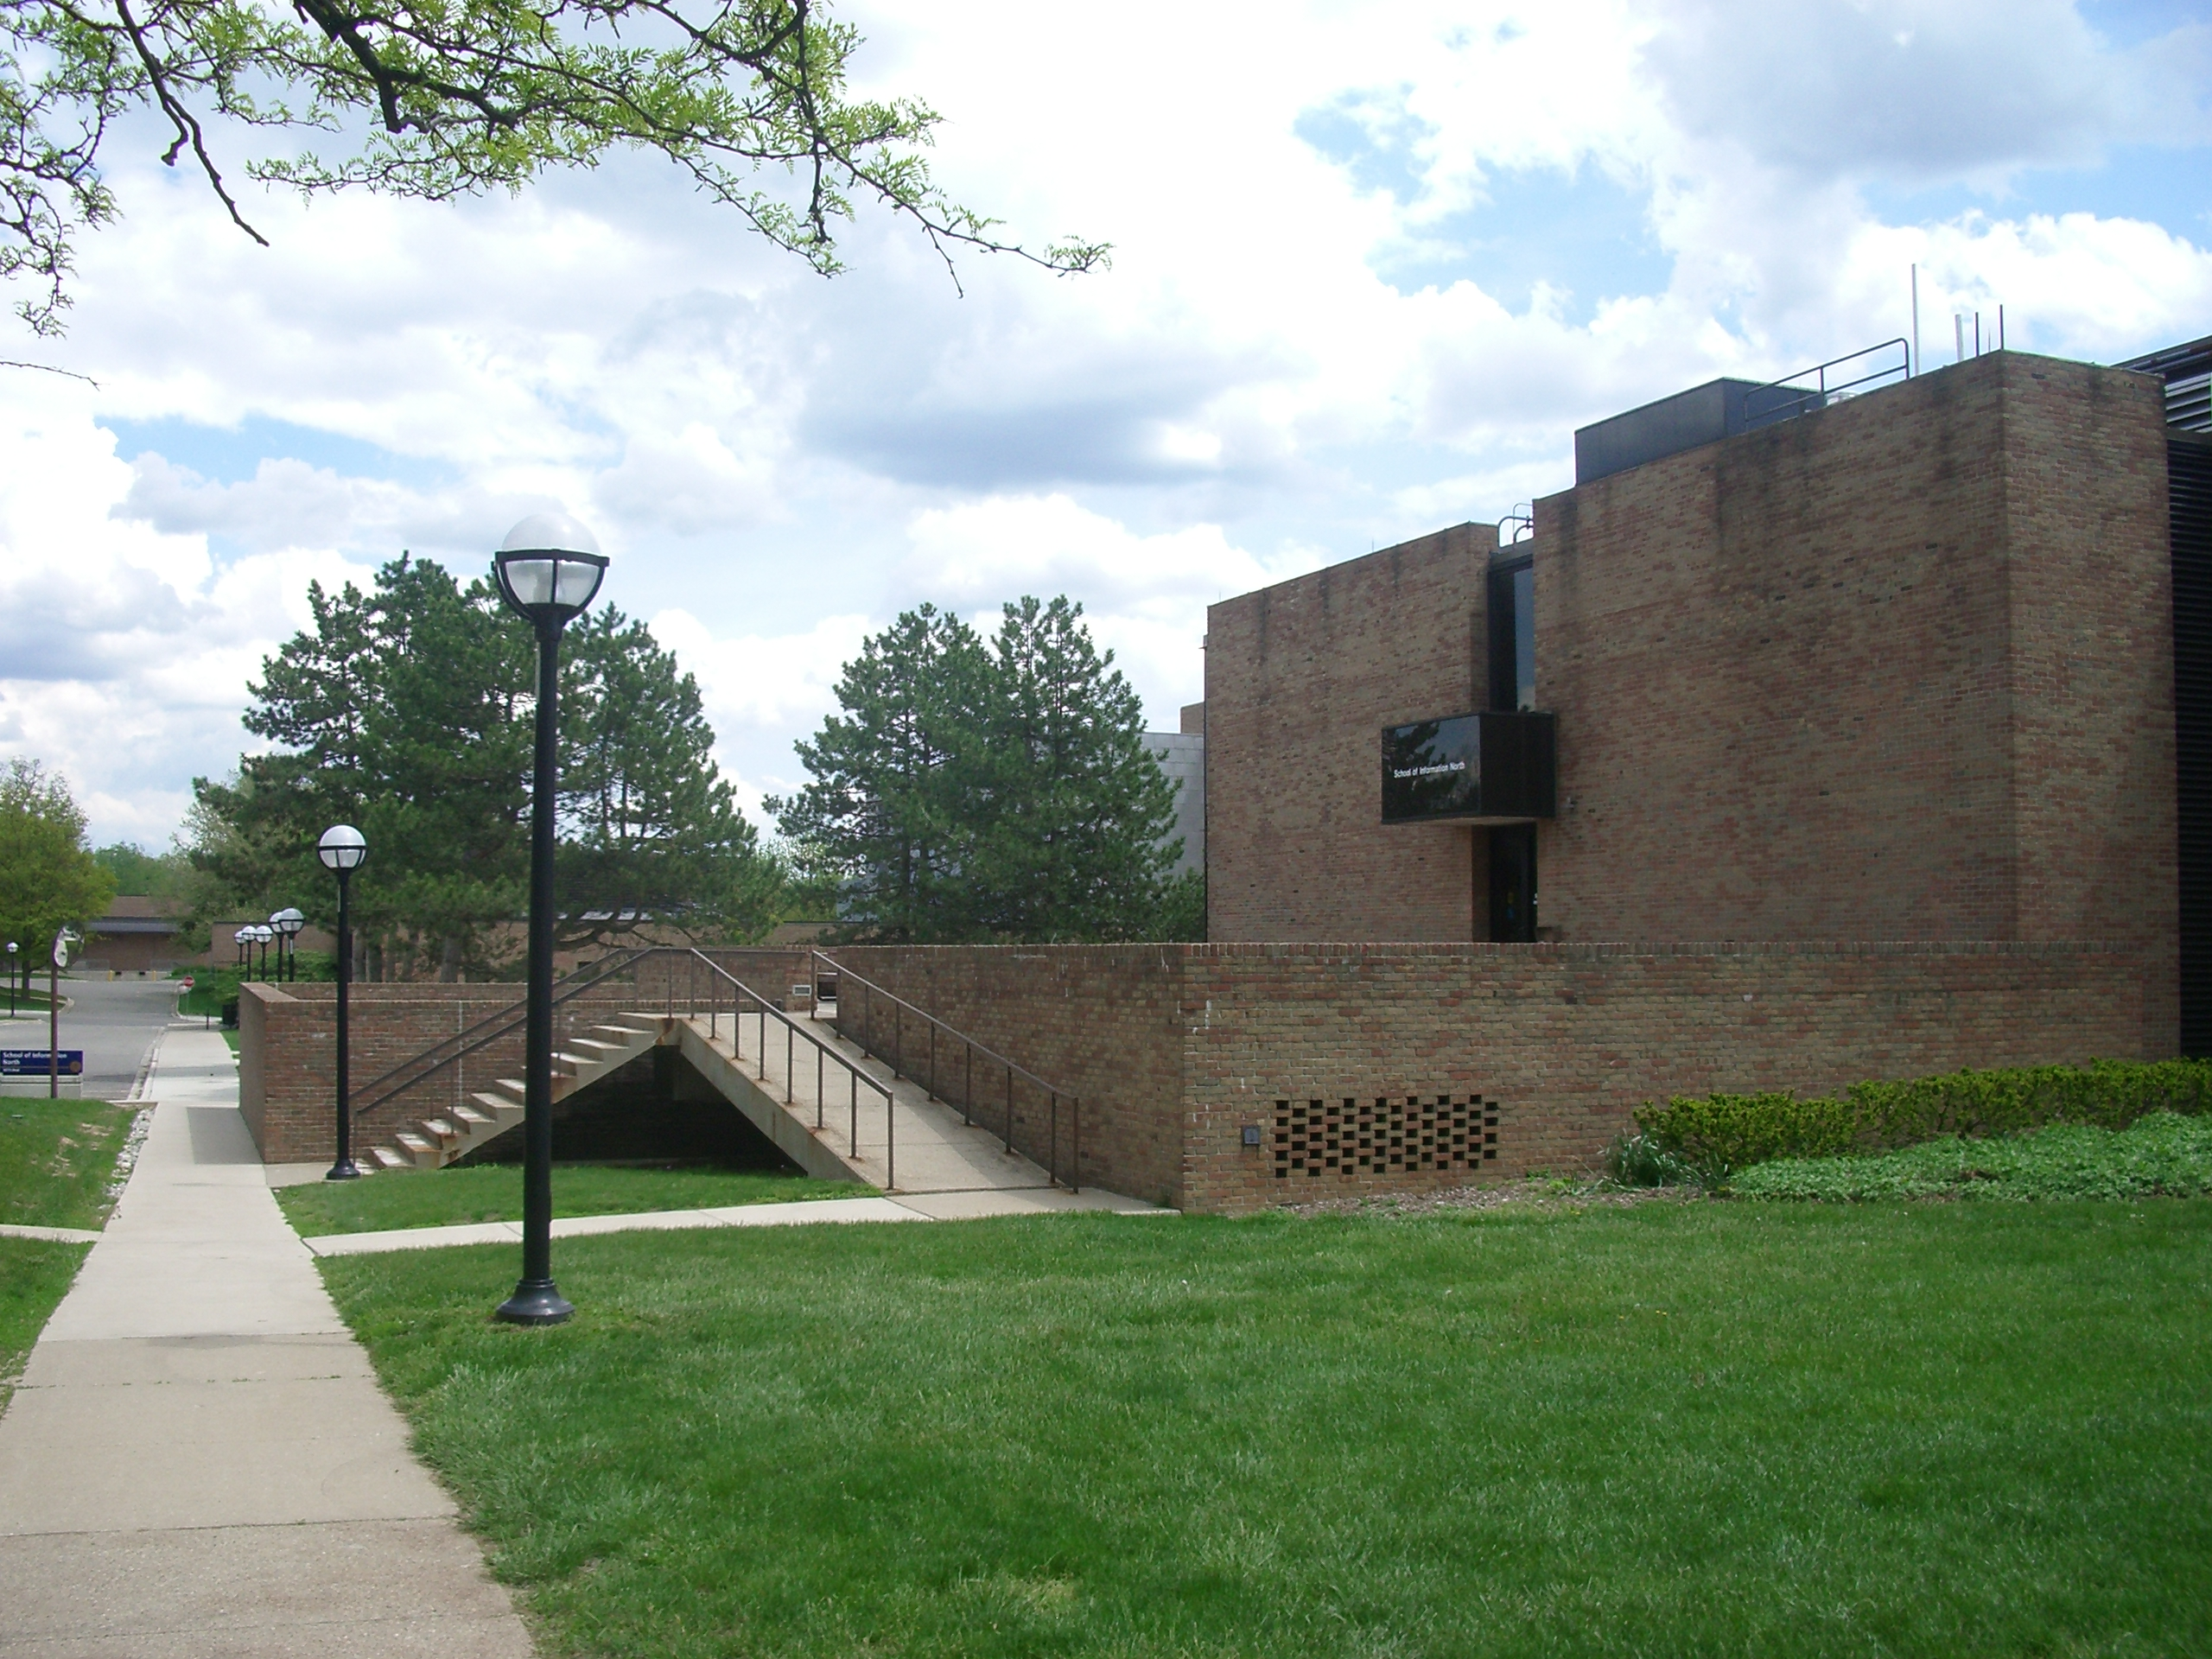 Photo: Main entrance, north side former Computing Center Building (now School of Information North), 2008, North Campus, University of Michigan, Ann Arbor, Michigan, USA